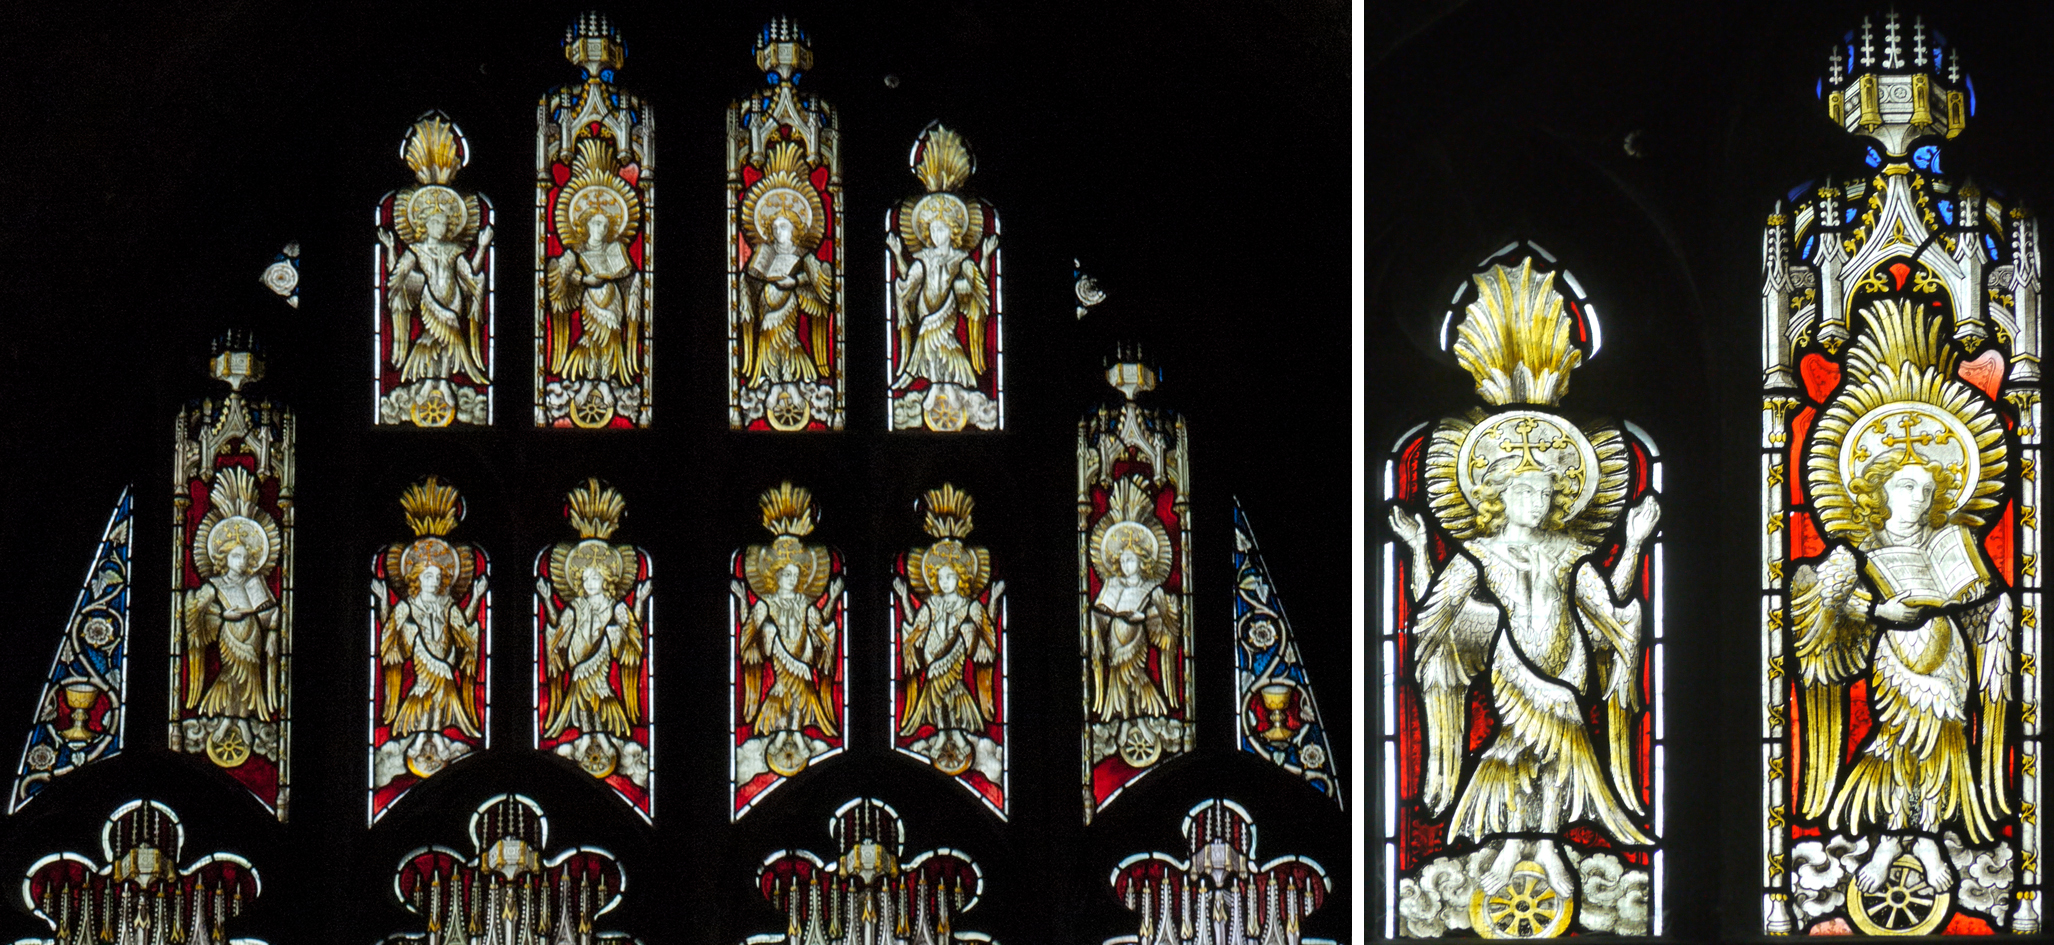 North aisle, west window - Victorian glass by Hardman                                                      Details